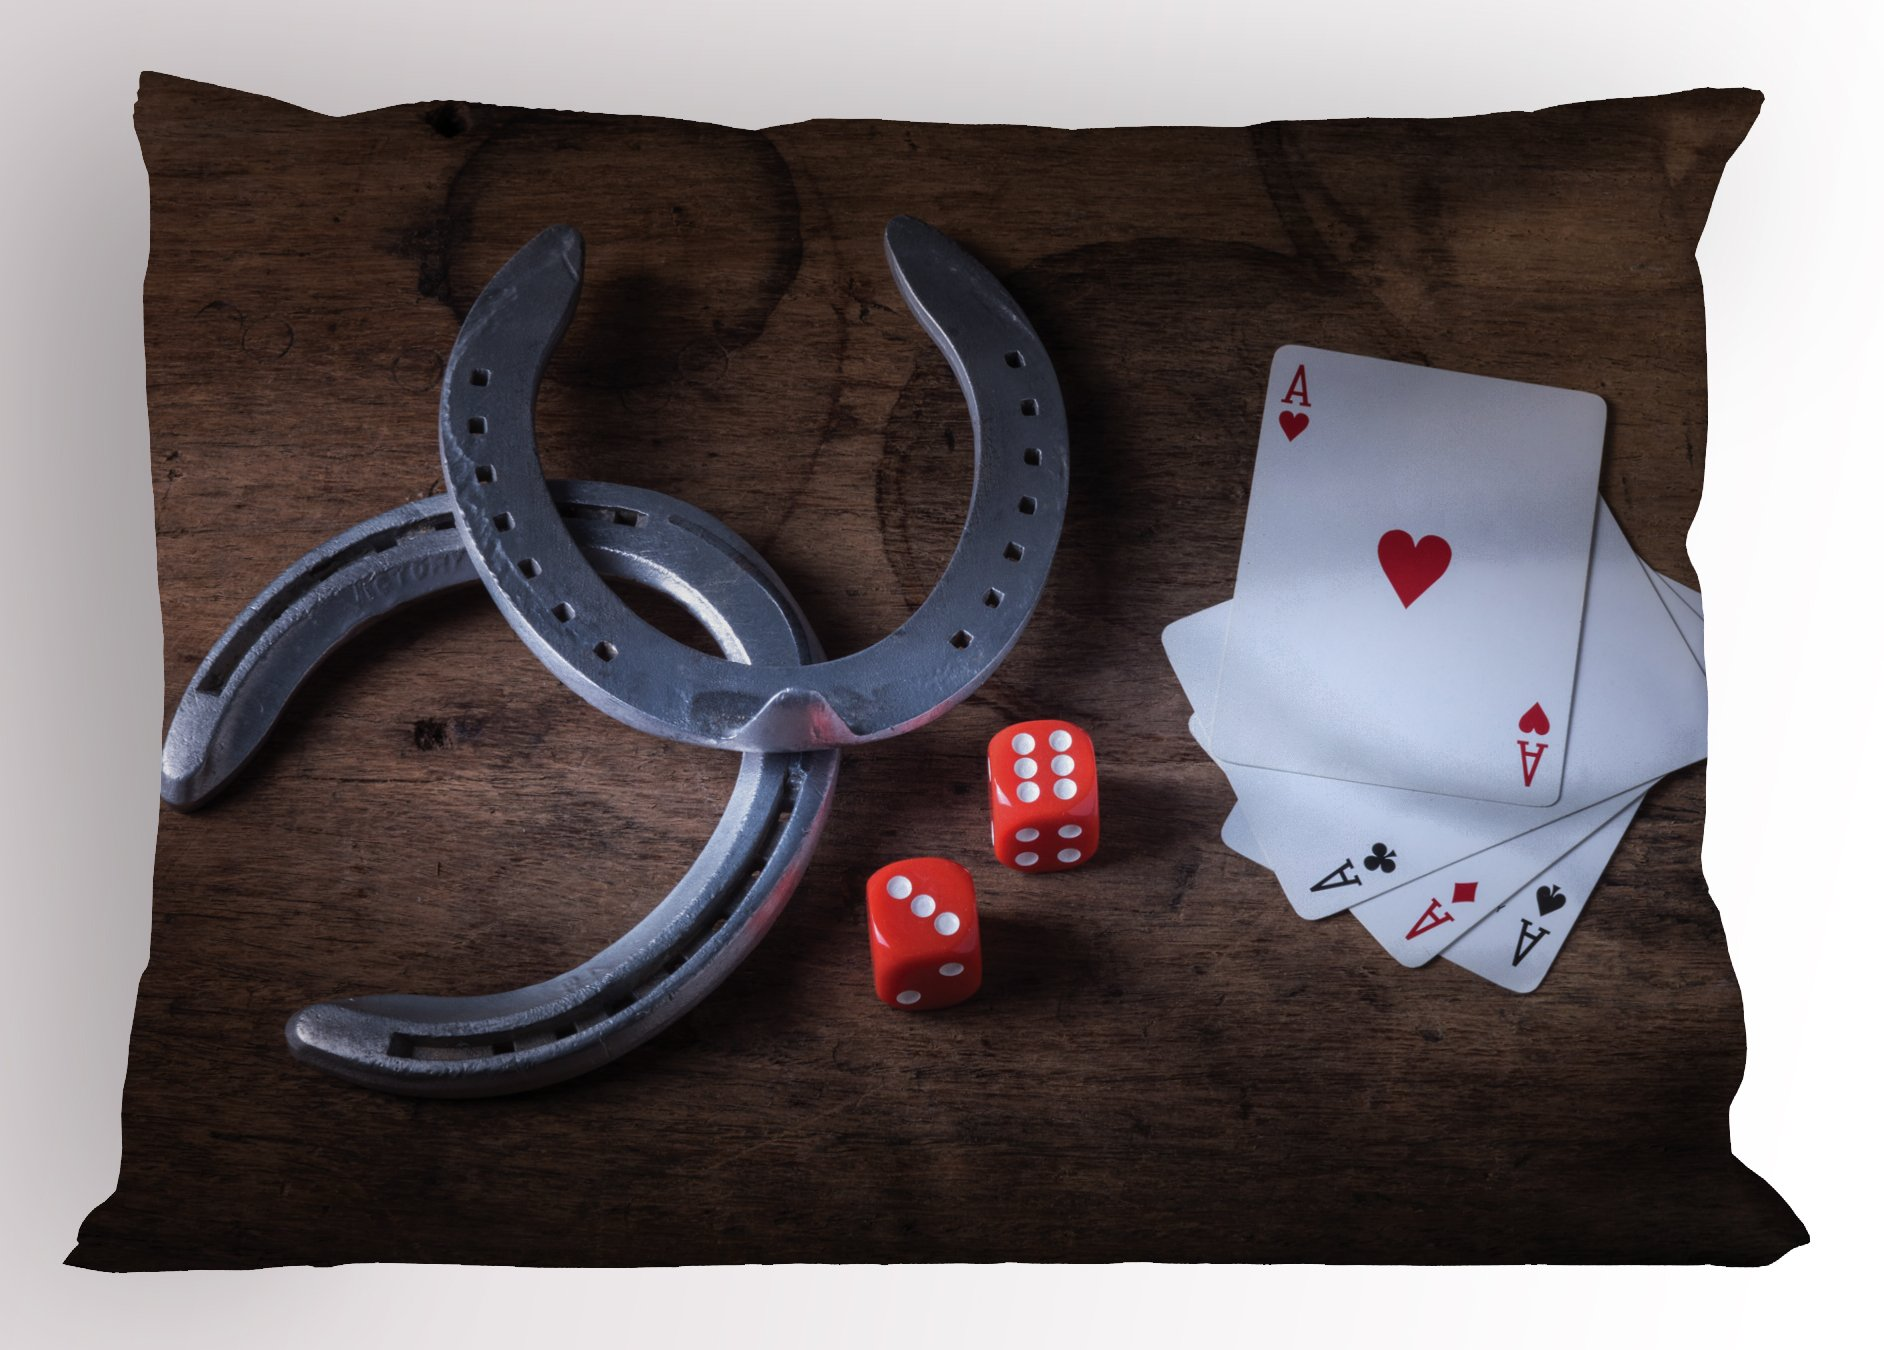 Ambesonne Western Pillow Sham, Horseshoes Lucky Card Game Dice Ace of Hearts Number Nine Poker Print, Decorative Standard King Size Printed Pillowcase, 36 X 20 inches, White Red Grey Brown